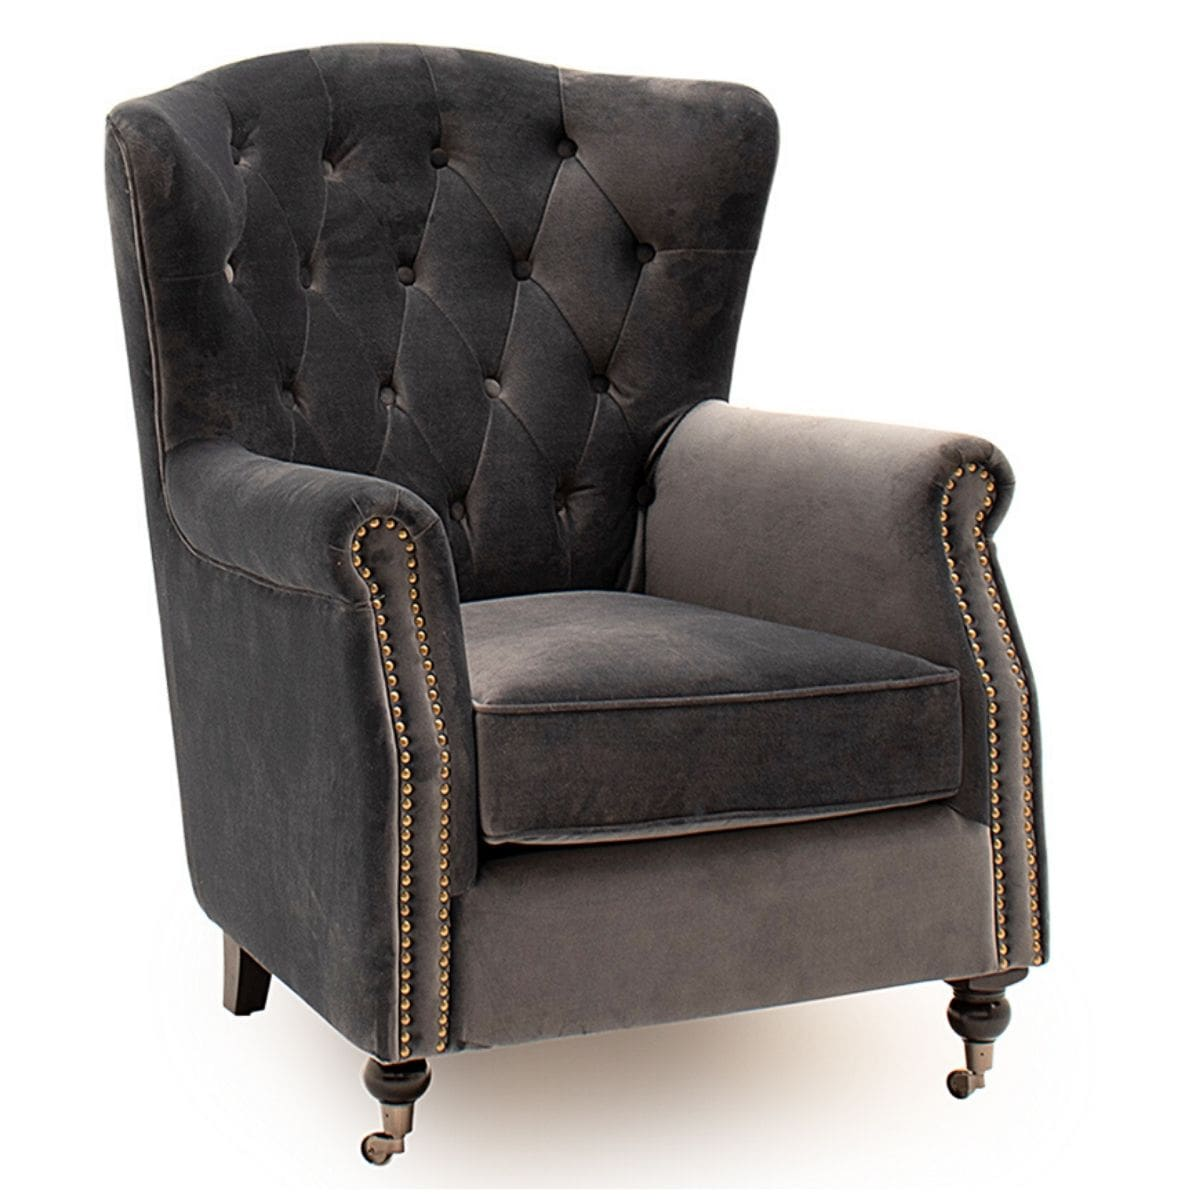 Douglas Velvet Tufted Wingback Chair